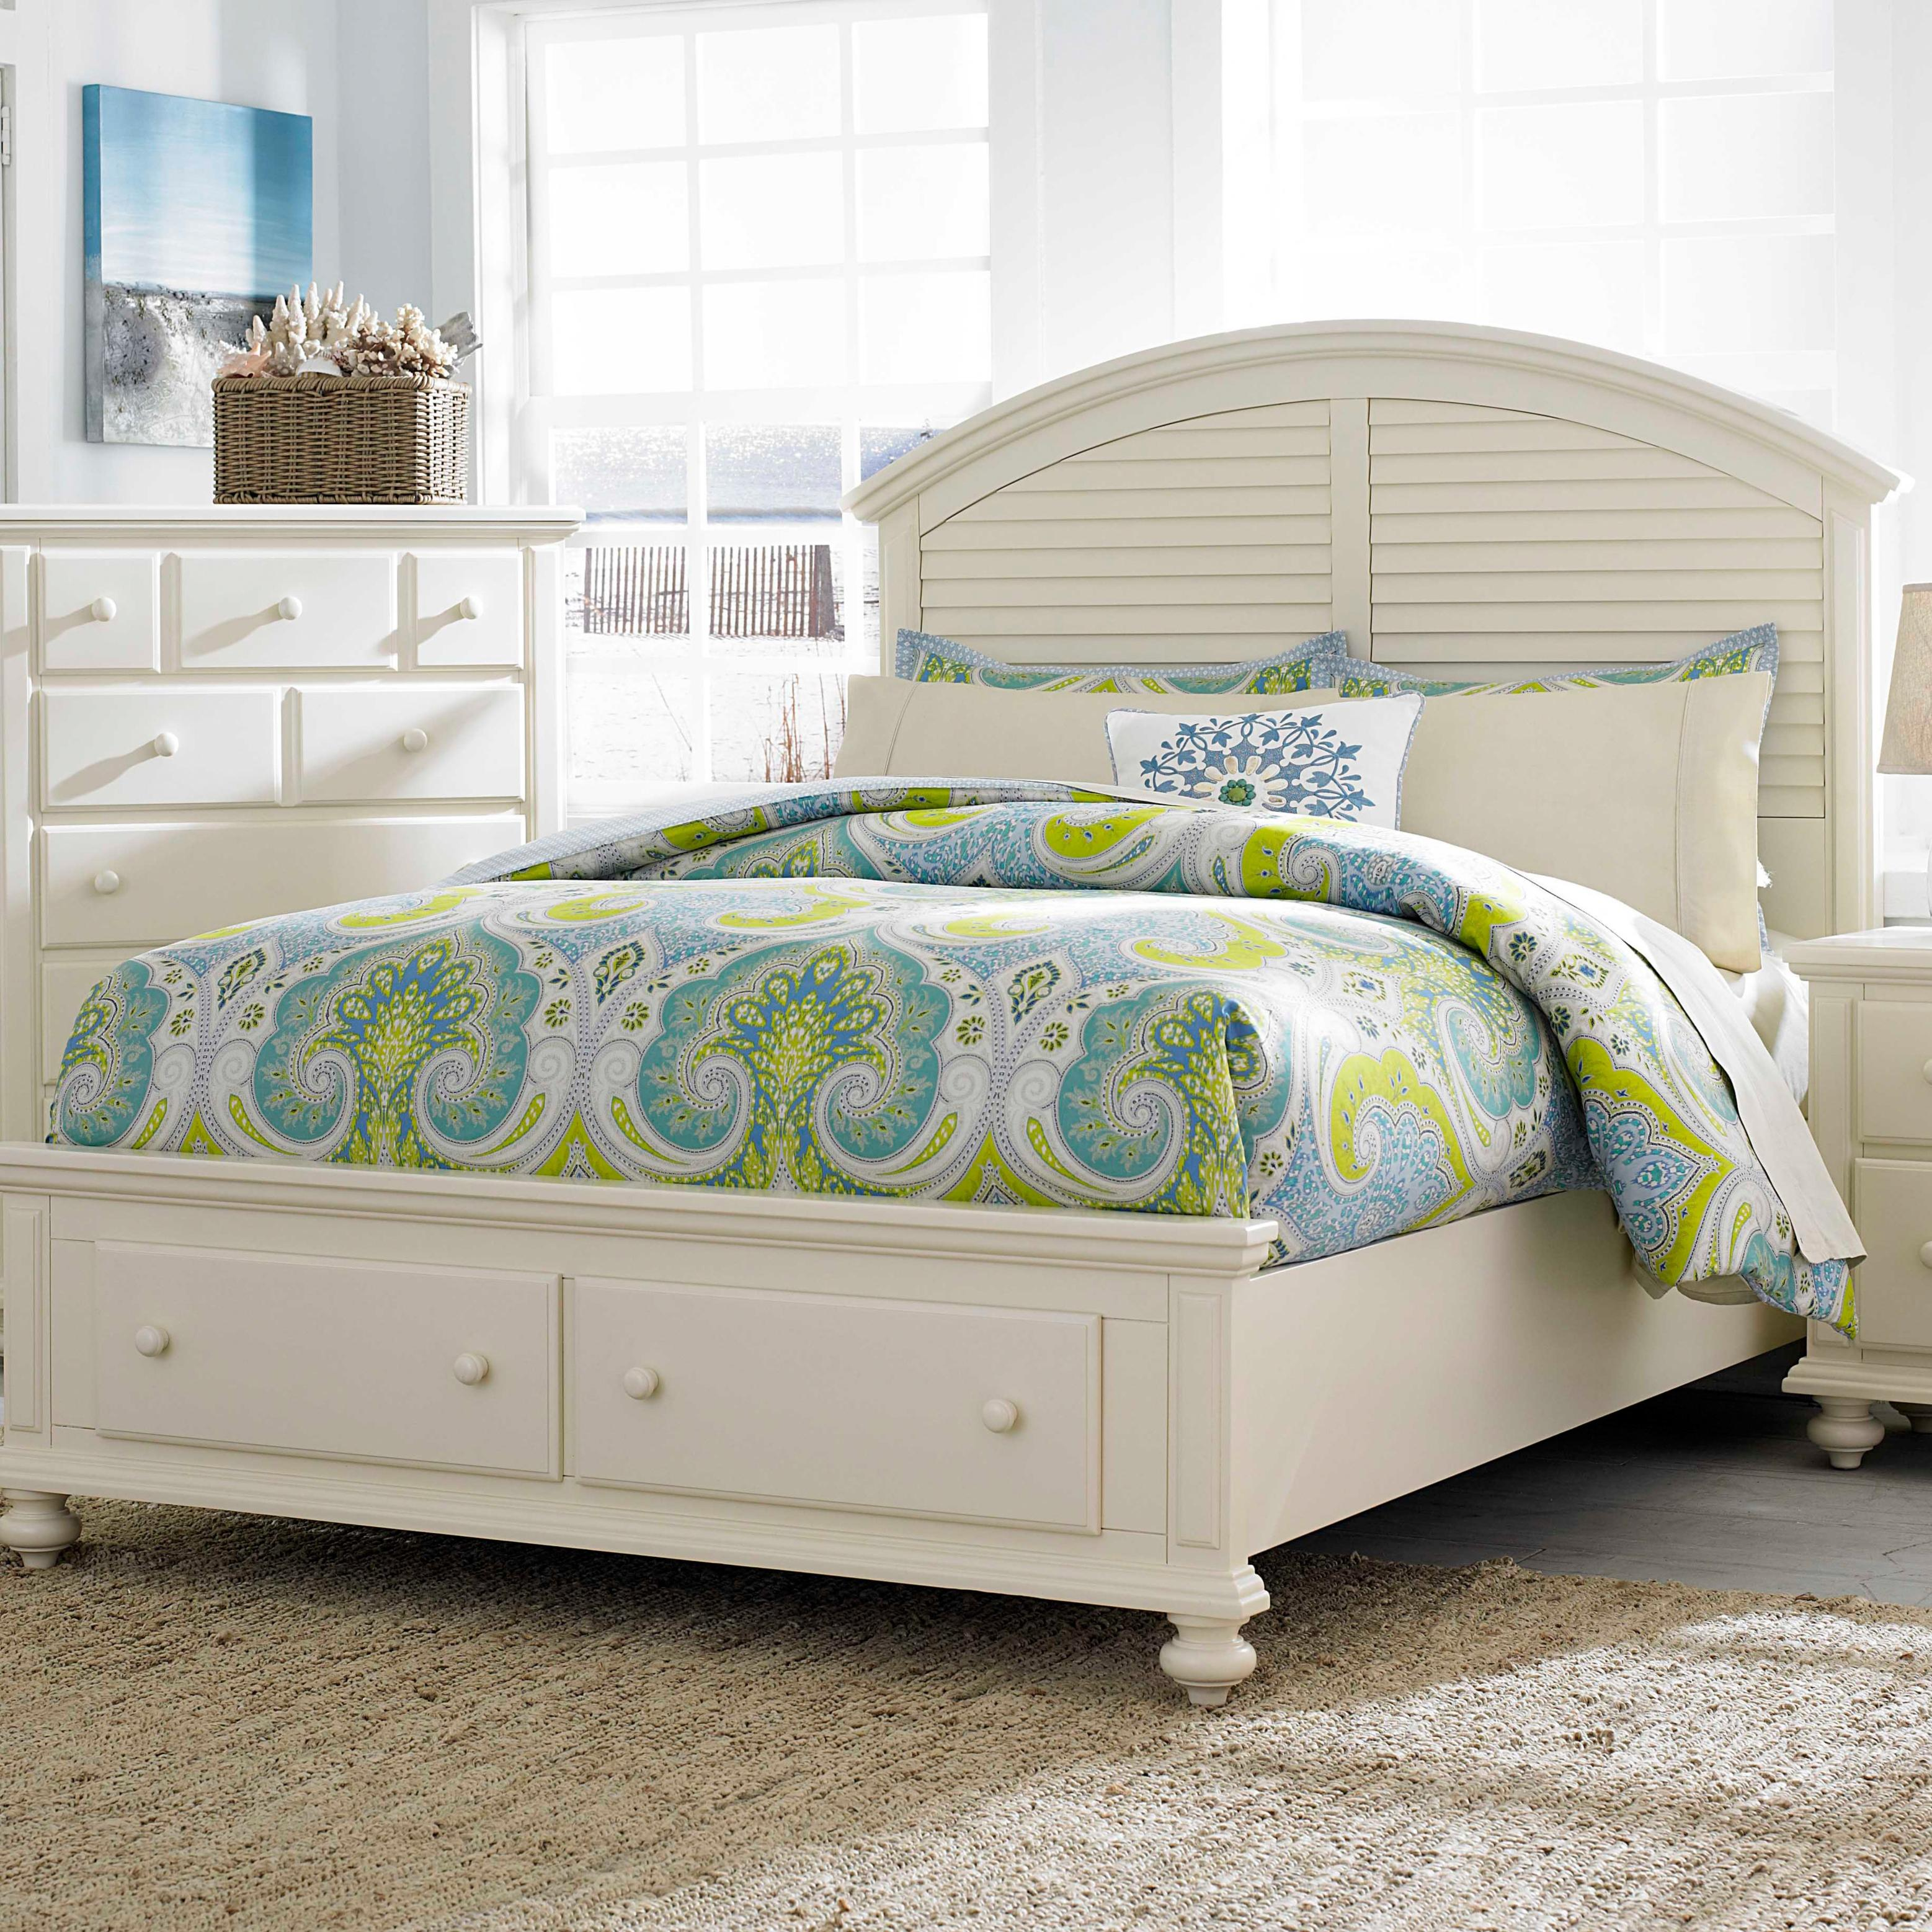 Broyhill Furniture Seabrooke Queen Panel Bed with Storage Footboard - Item Number: 4471-250+253+460